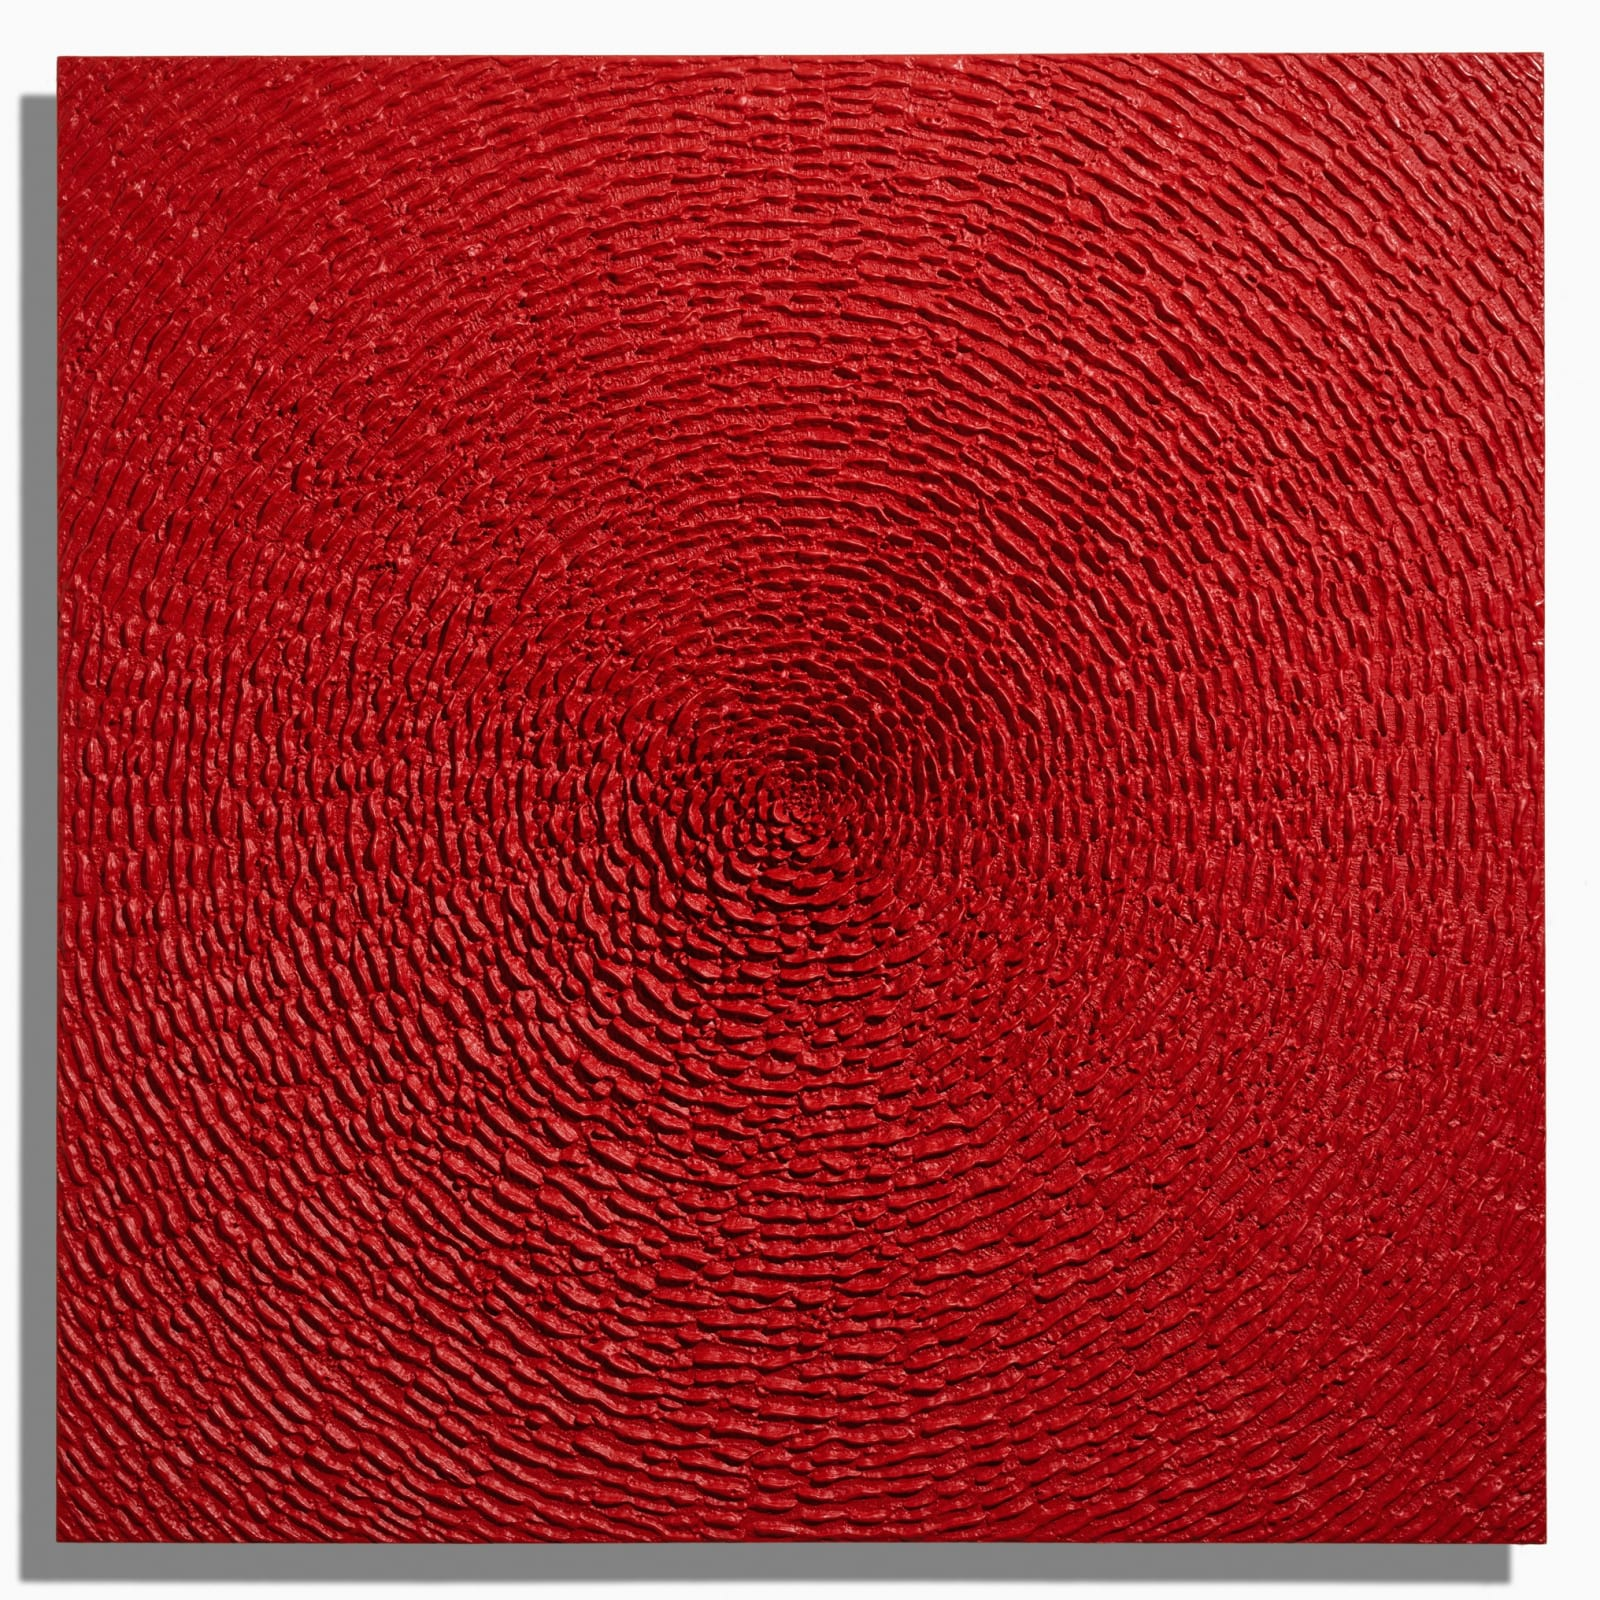 Martin Kline, New Red Bloom, 2019